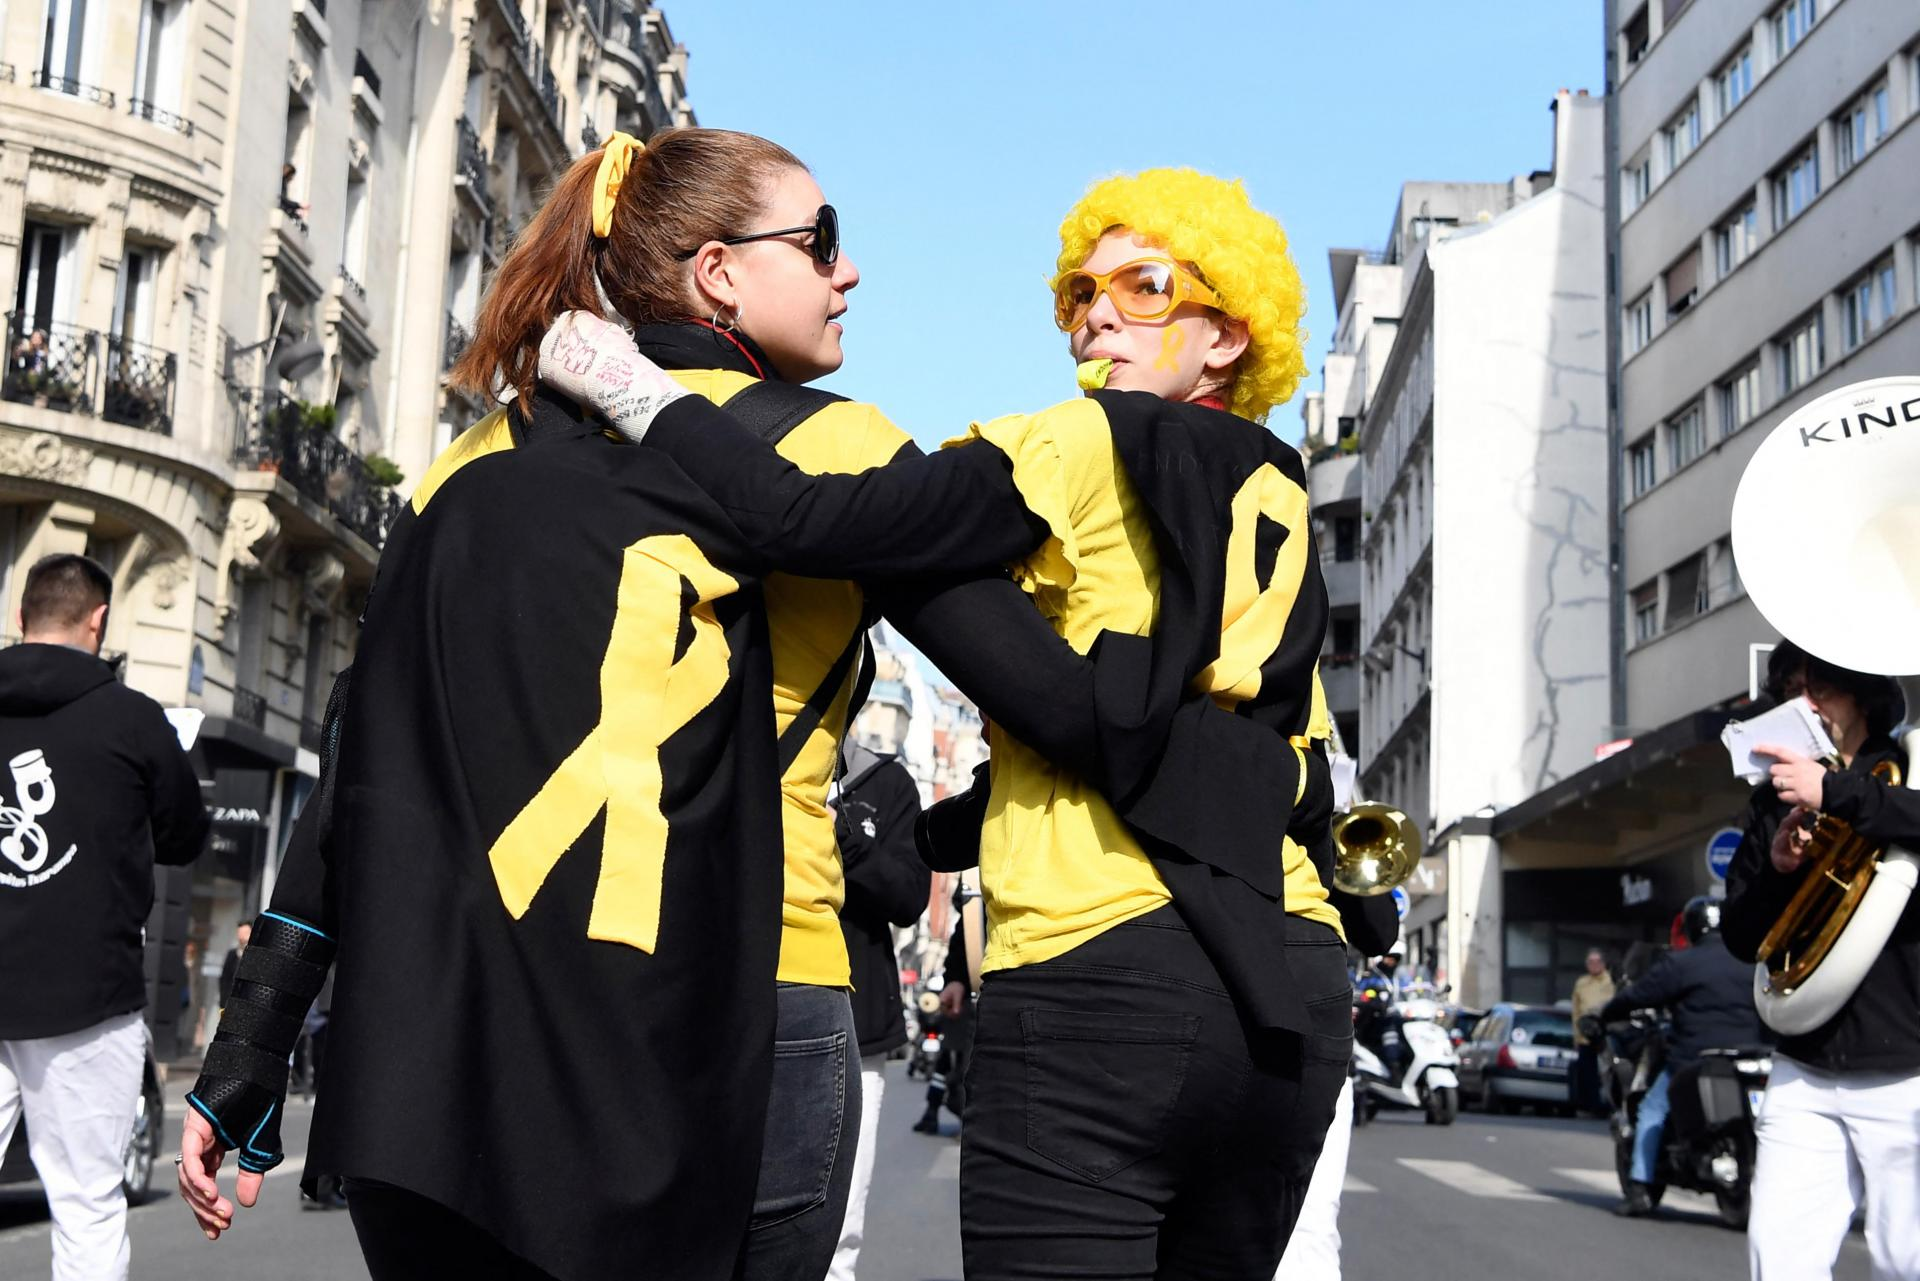 Women take part in the annual worldwide EndoMarch and world Endometriosis Day, hosted by the French associations Association ENDOmind and MEMS France (Mon Endometriose Ma Souffrance) on March 24, 2018, in Paris. Photo: Alain Jocard/AFP